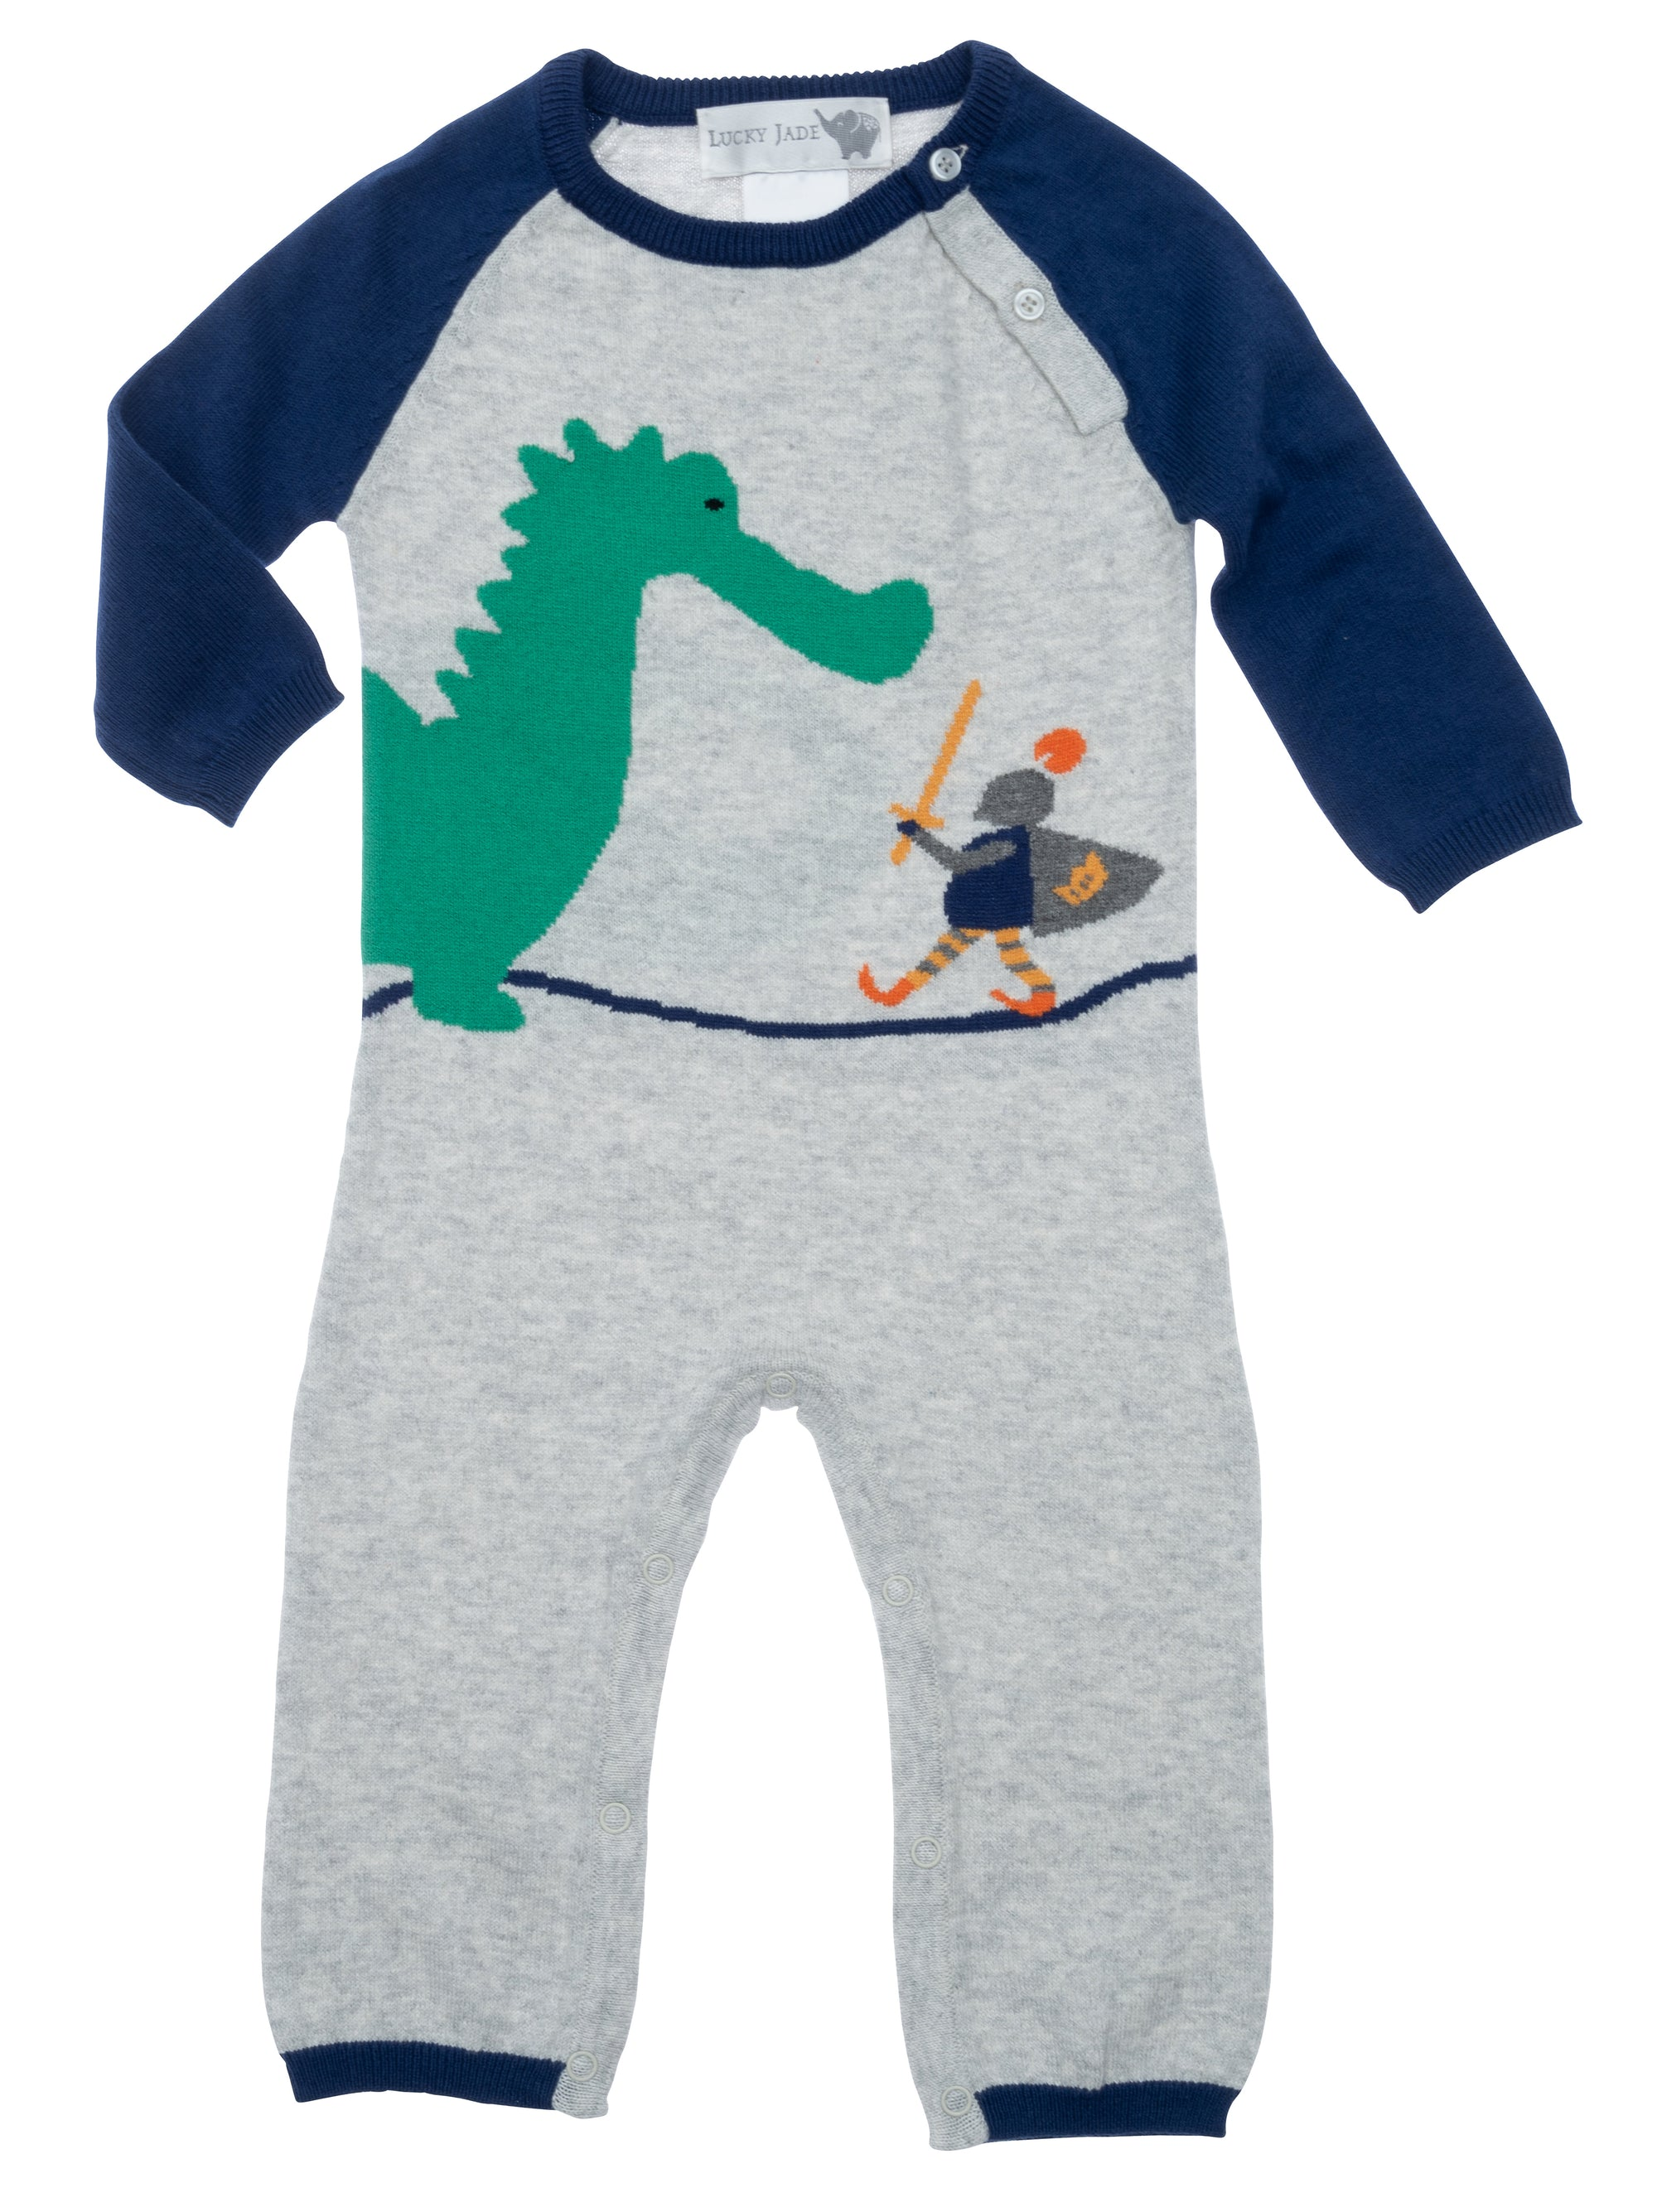 infant coverall with knight conquering dragon graphic